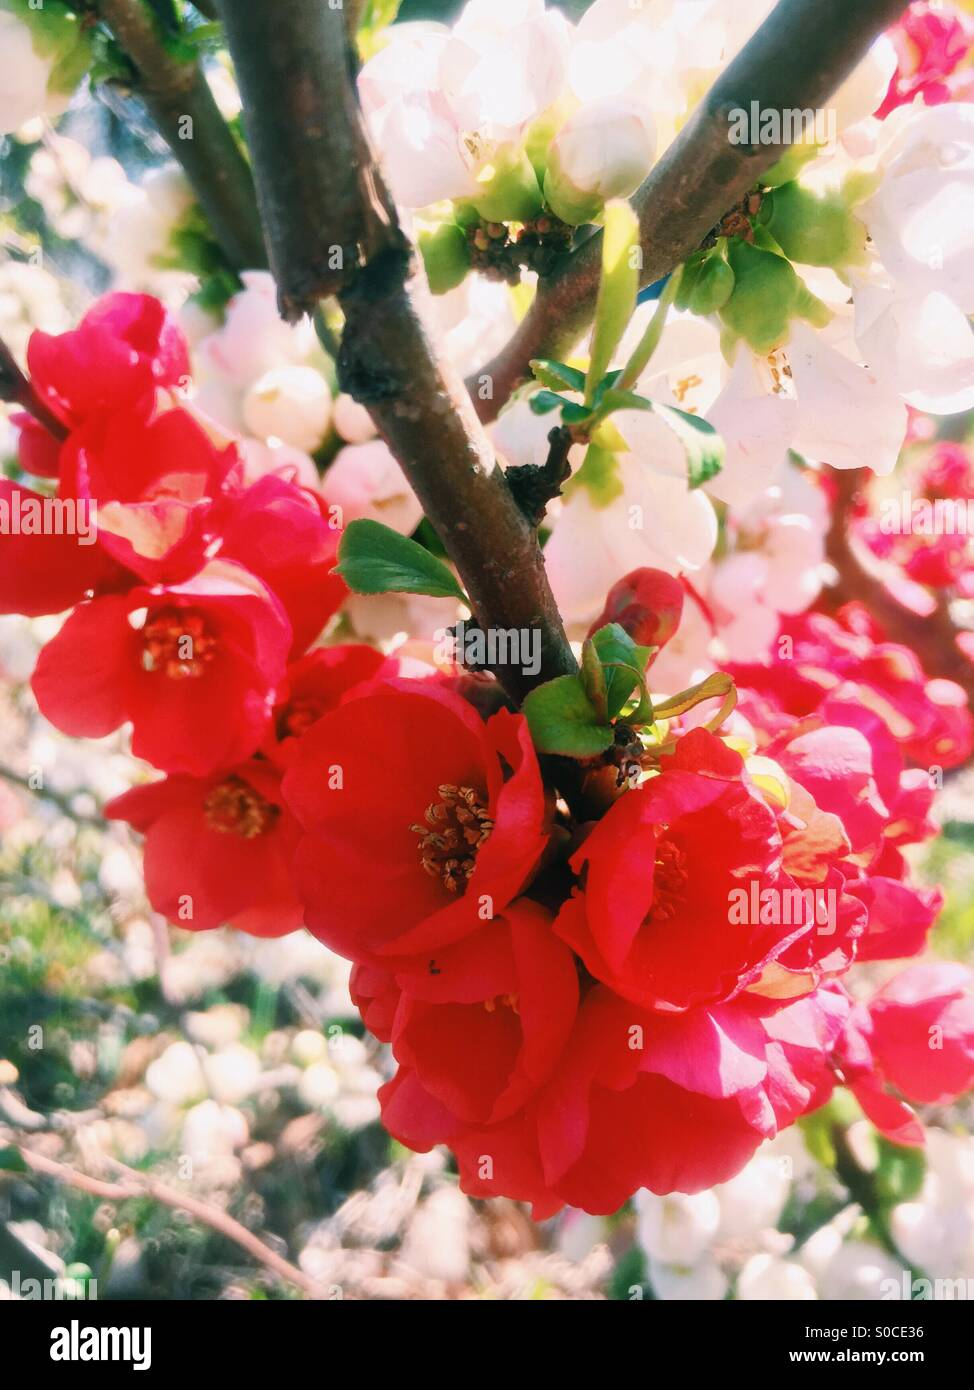 Vibrant red Bokenohana or flowering quince in Spring, with the white variety in the background. - Stock Image